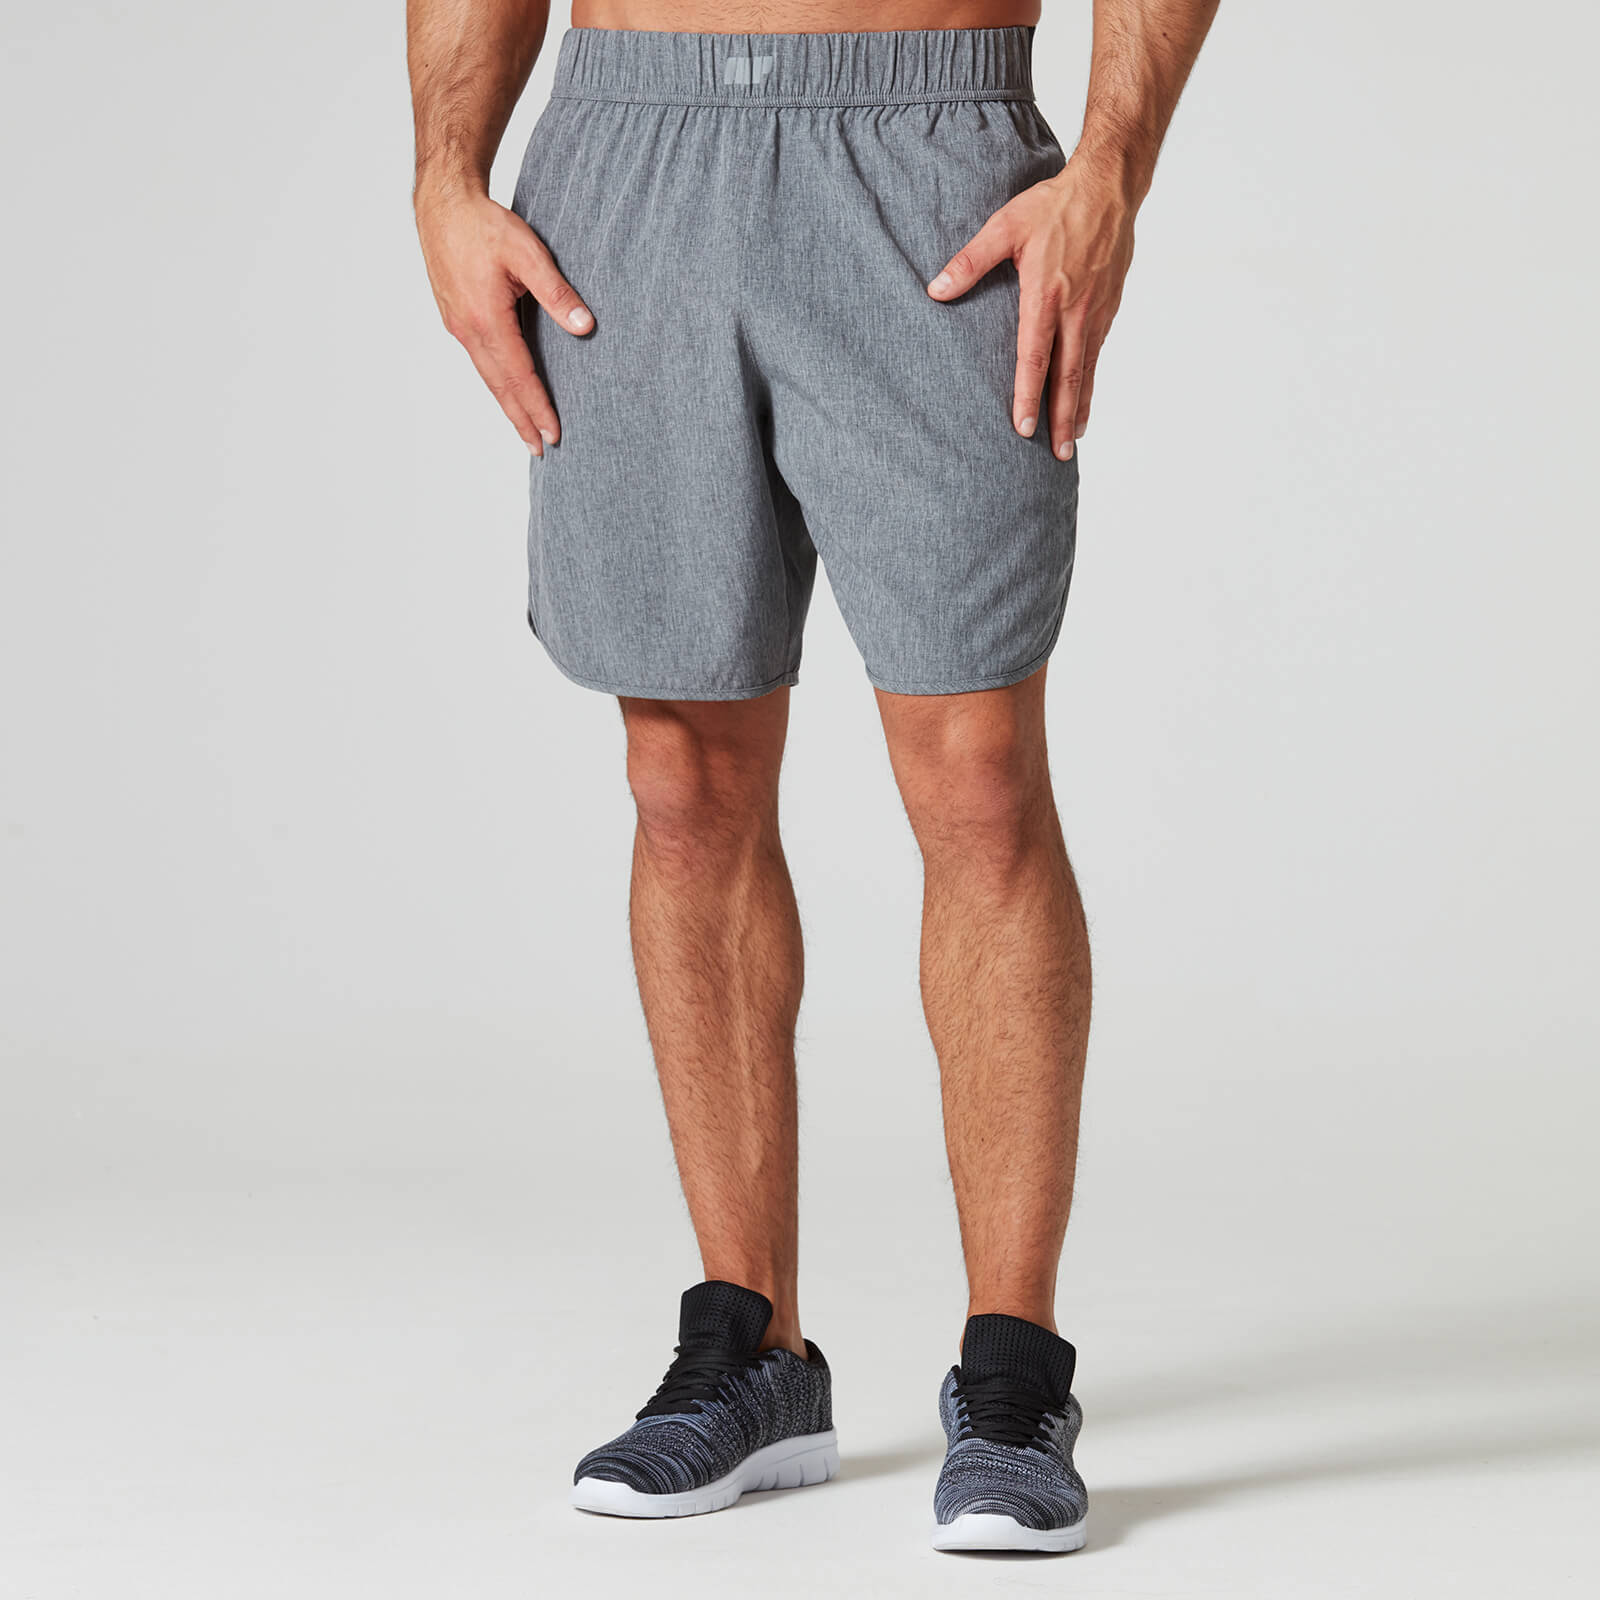 Glide Shorts - Charcoal - S